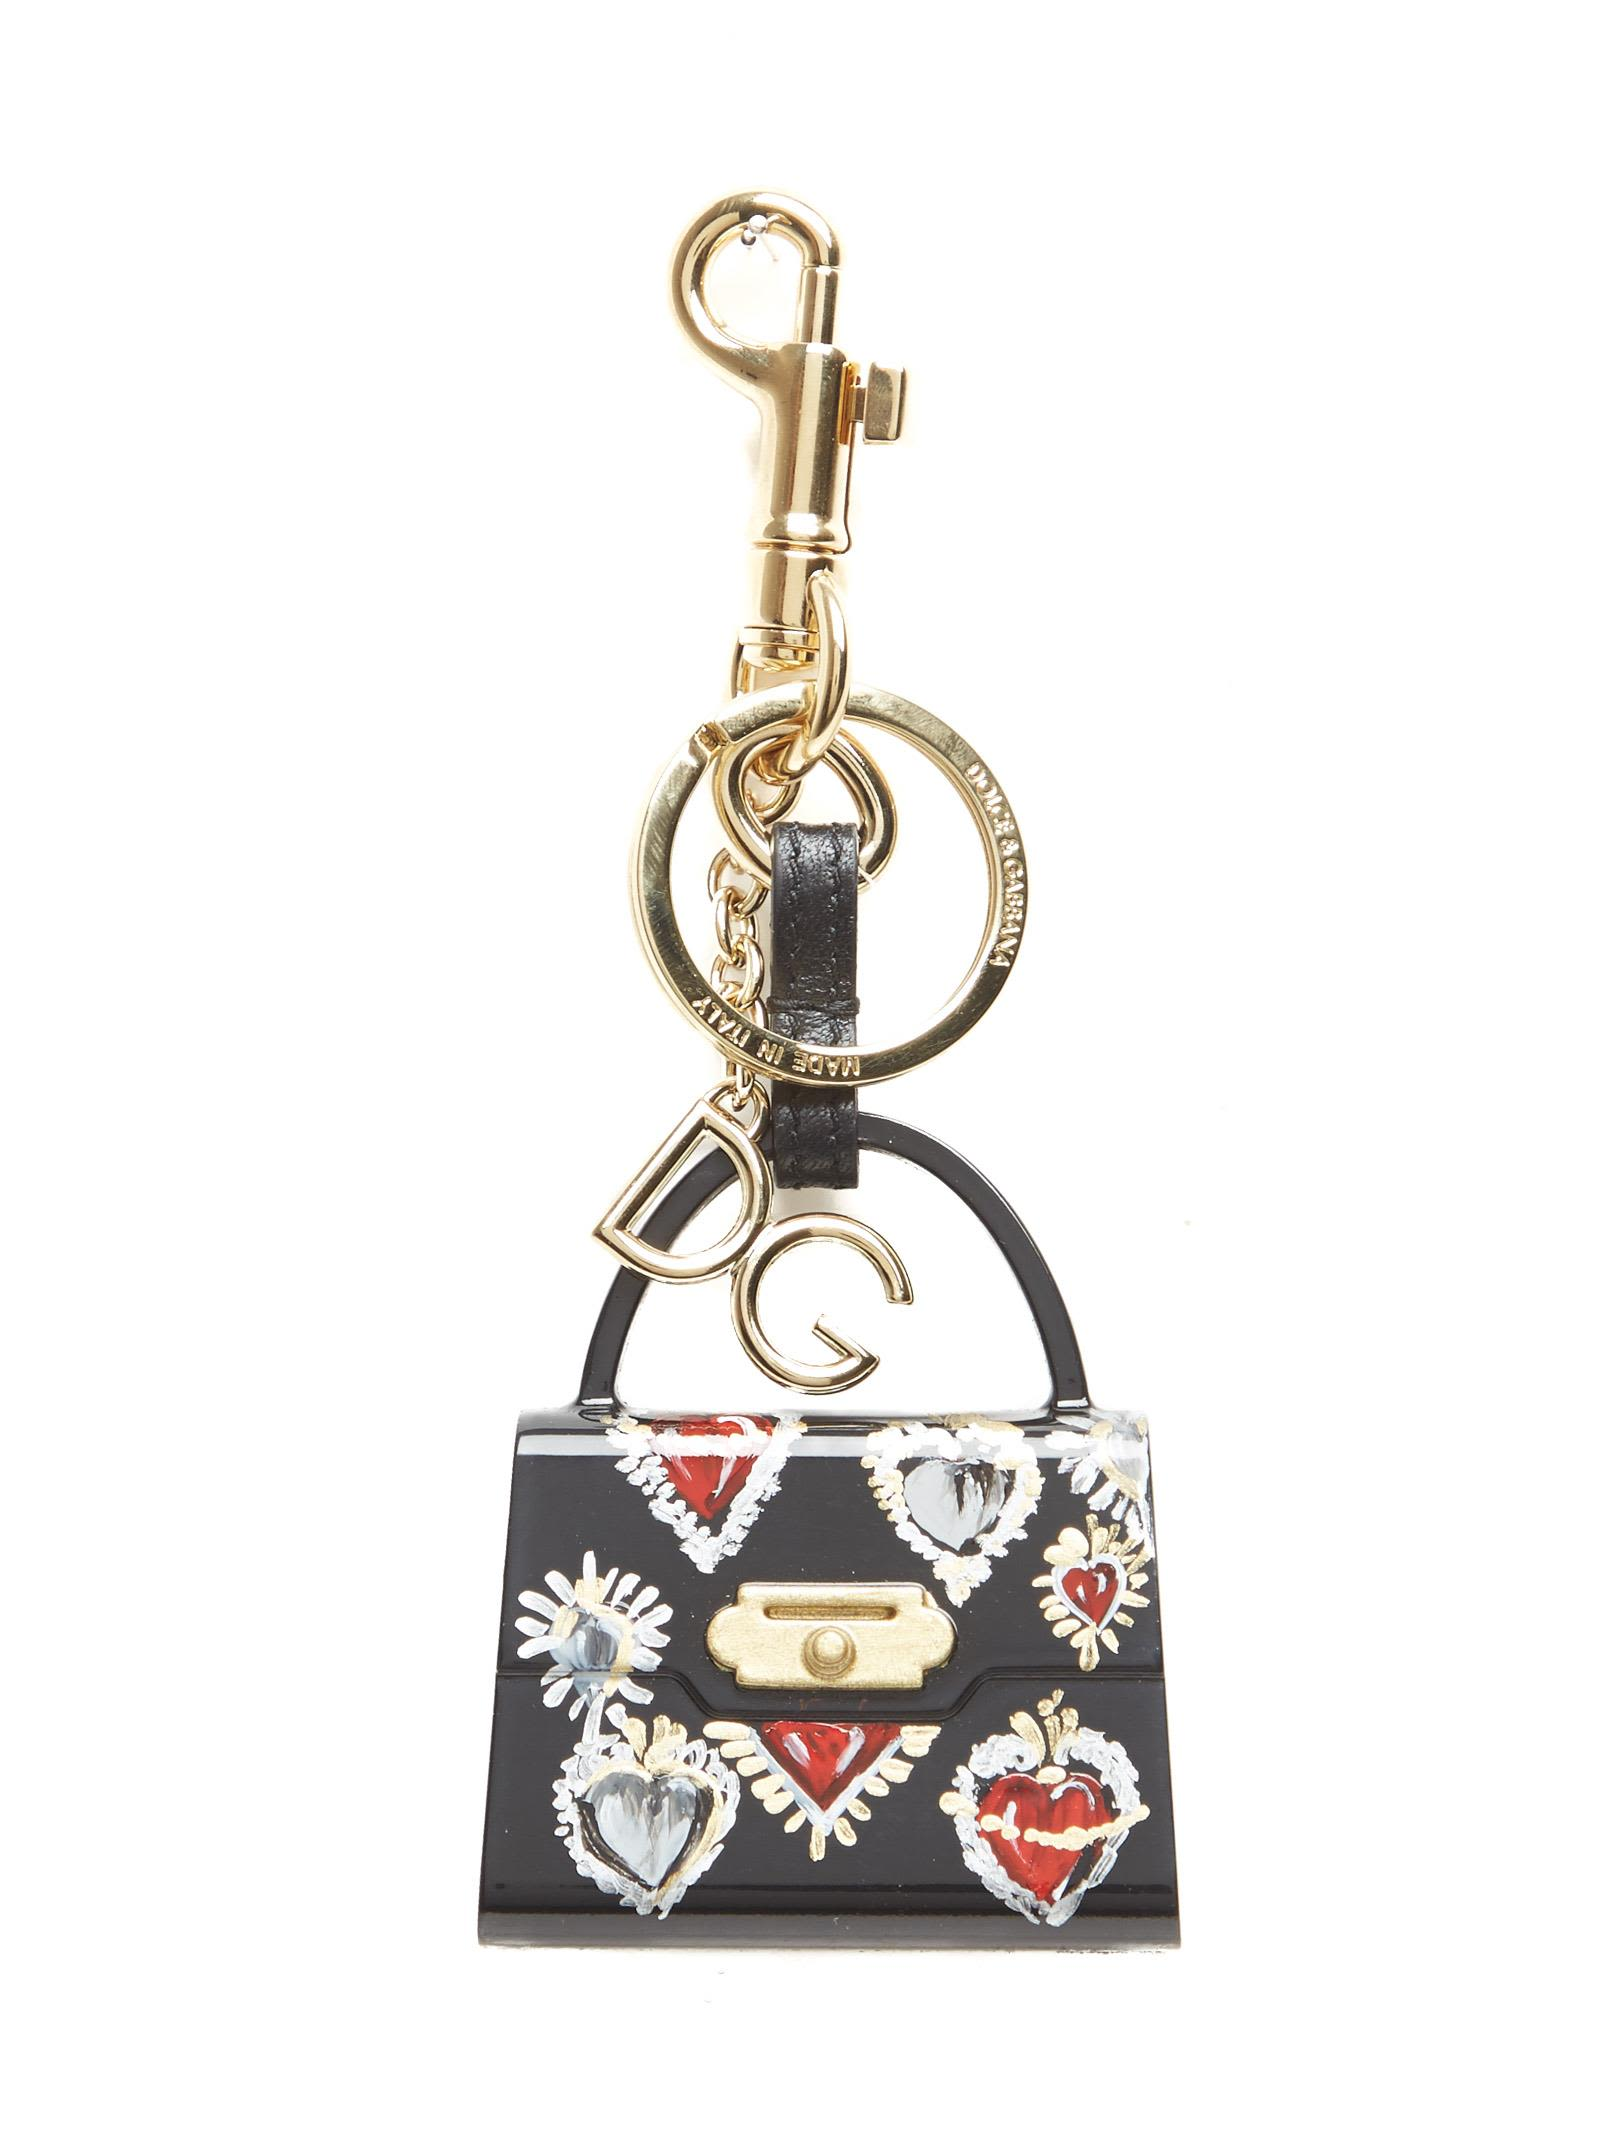 Dolce & Gabbana Welcome Tote keyring Cheap Collections Outlet Locations Cheap Price A4b1vpAG5C